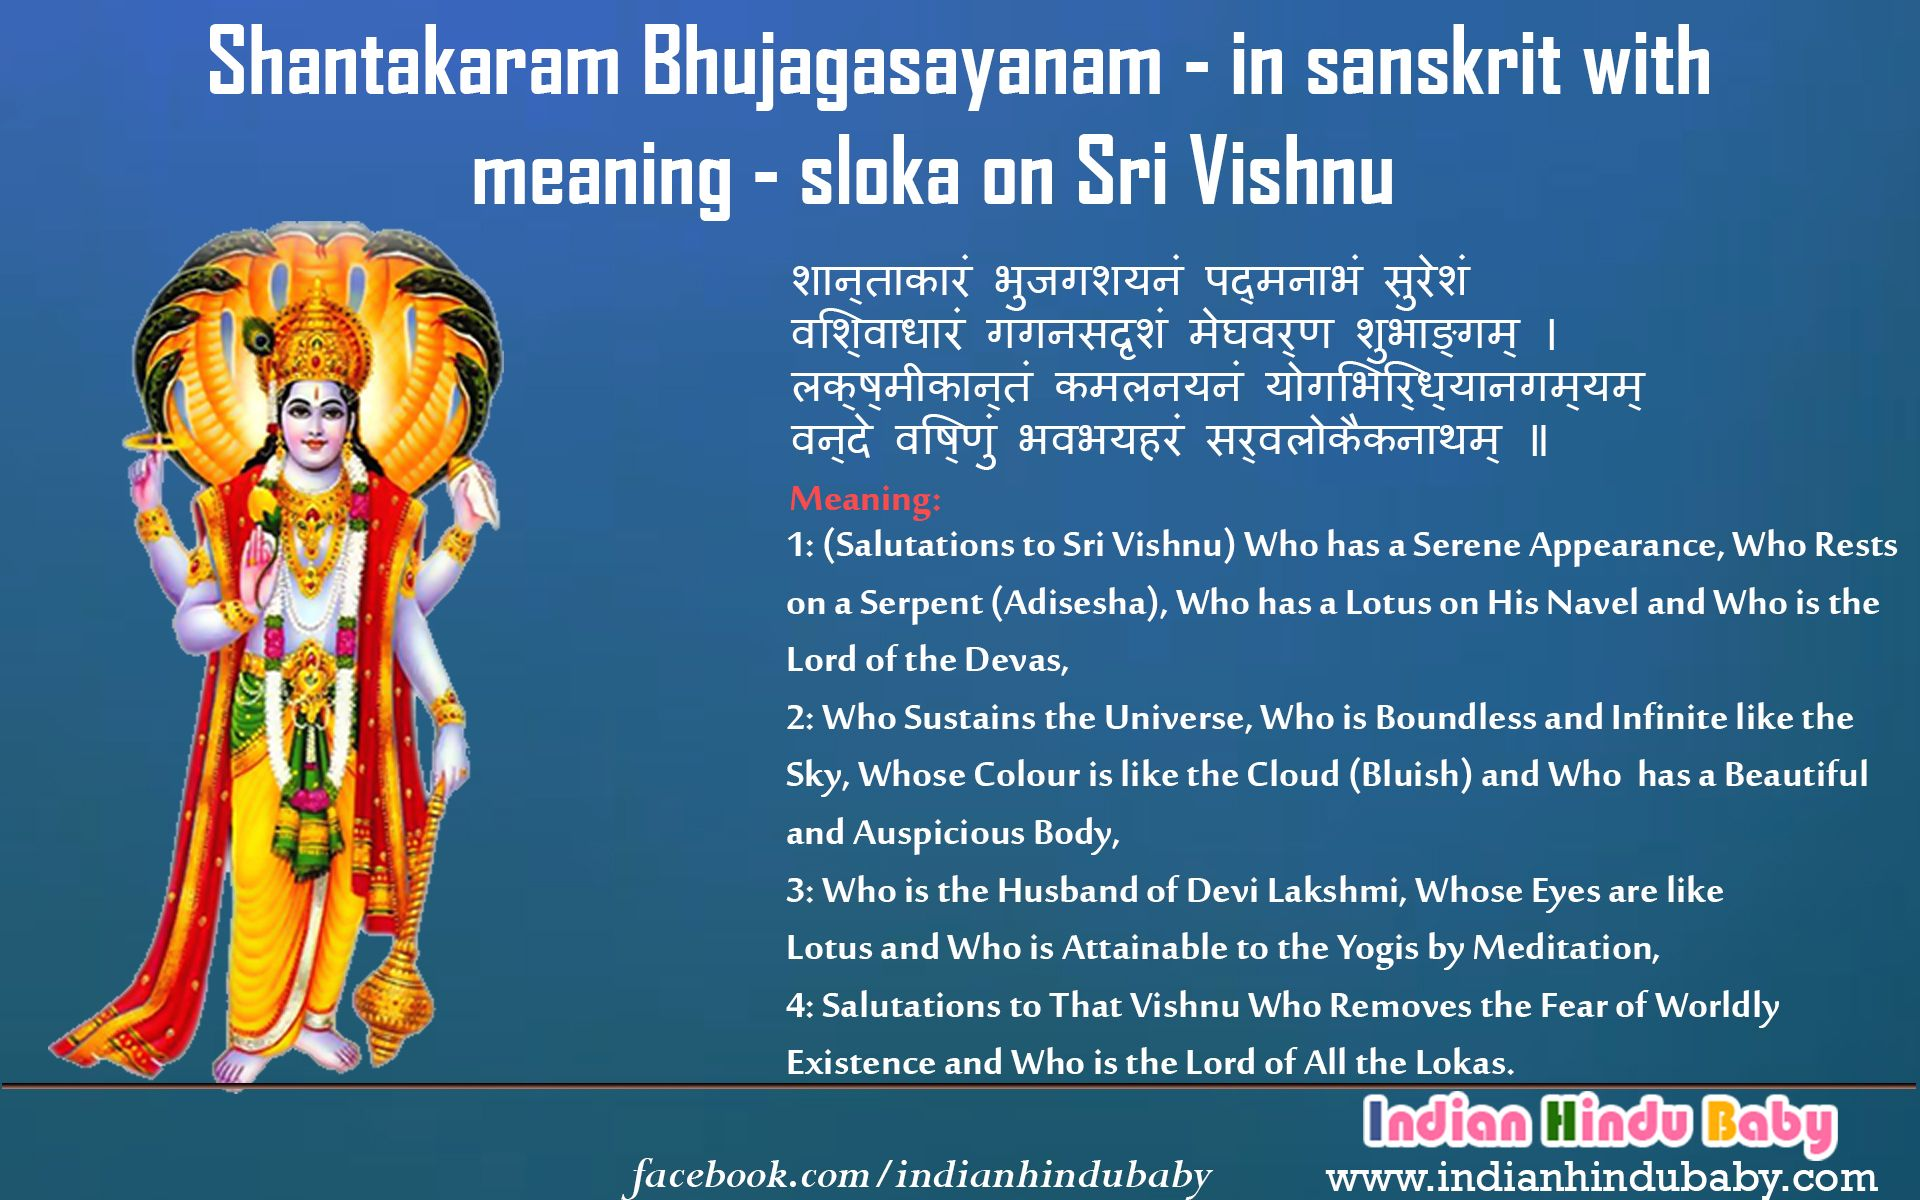 Sanskrit Of The Vedas Vs Modern Sanskrit: Check Out The Meaning Of Sanskrit Sloka Of Lord Vishnu